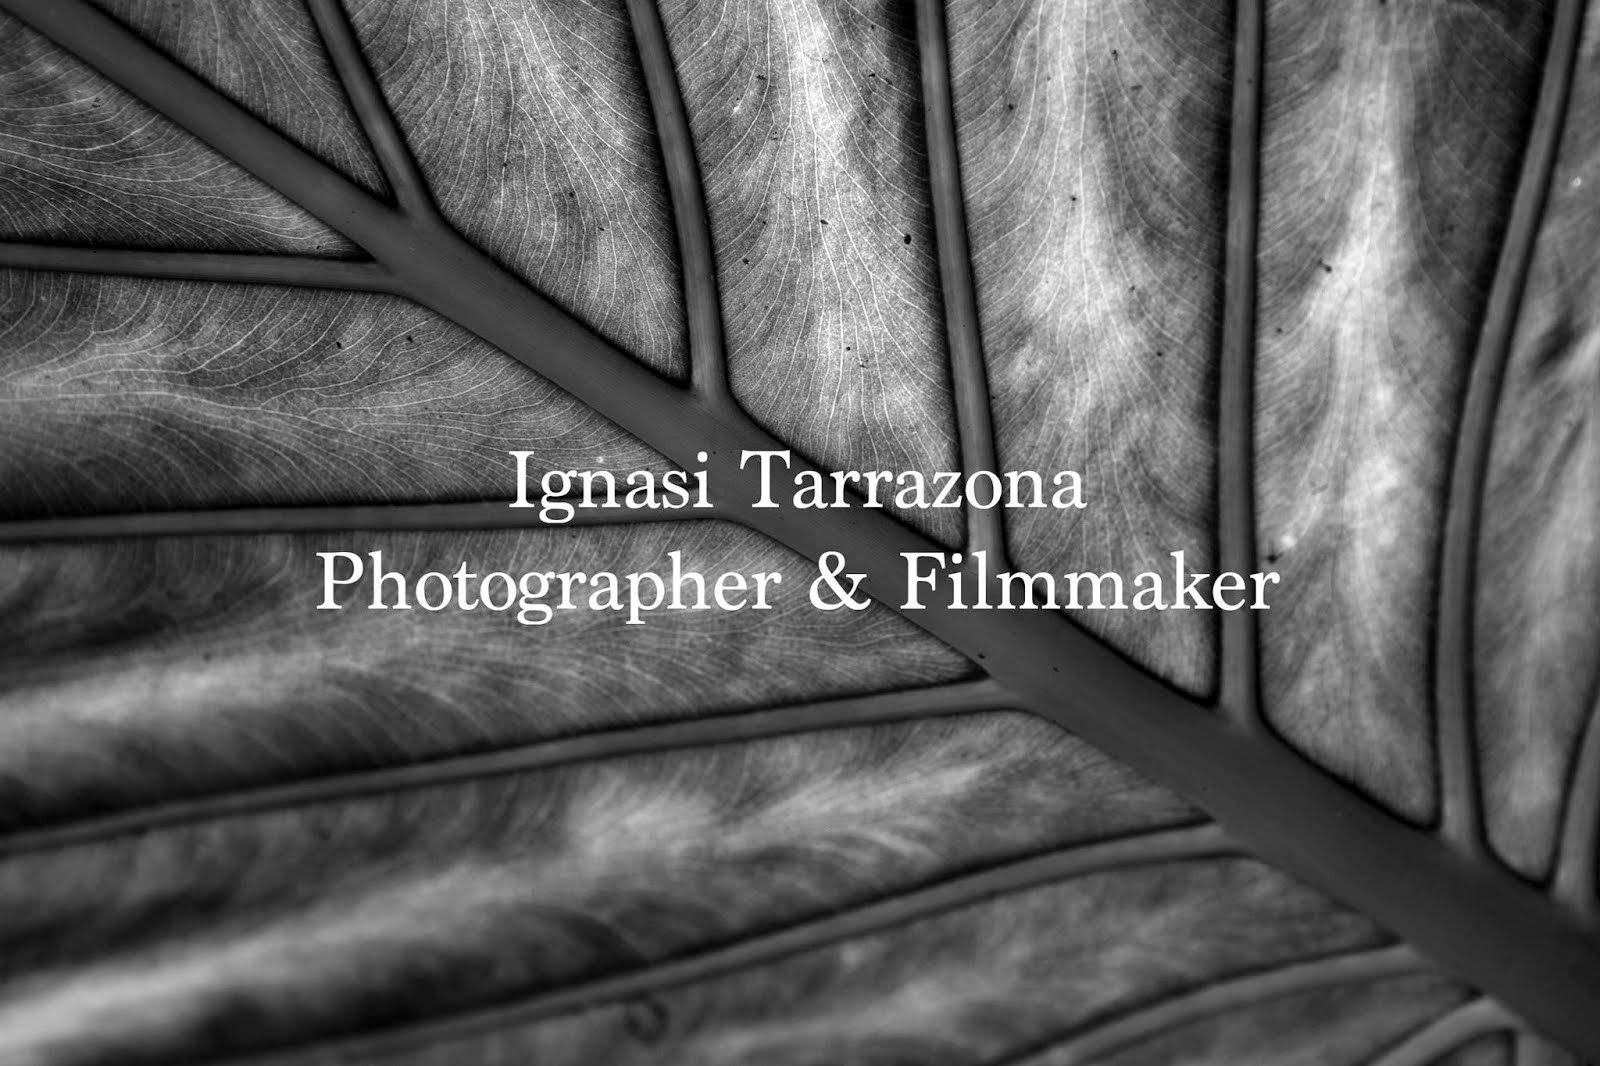 Ignasi Tarrazona Photographer & Filmmaker